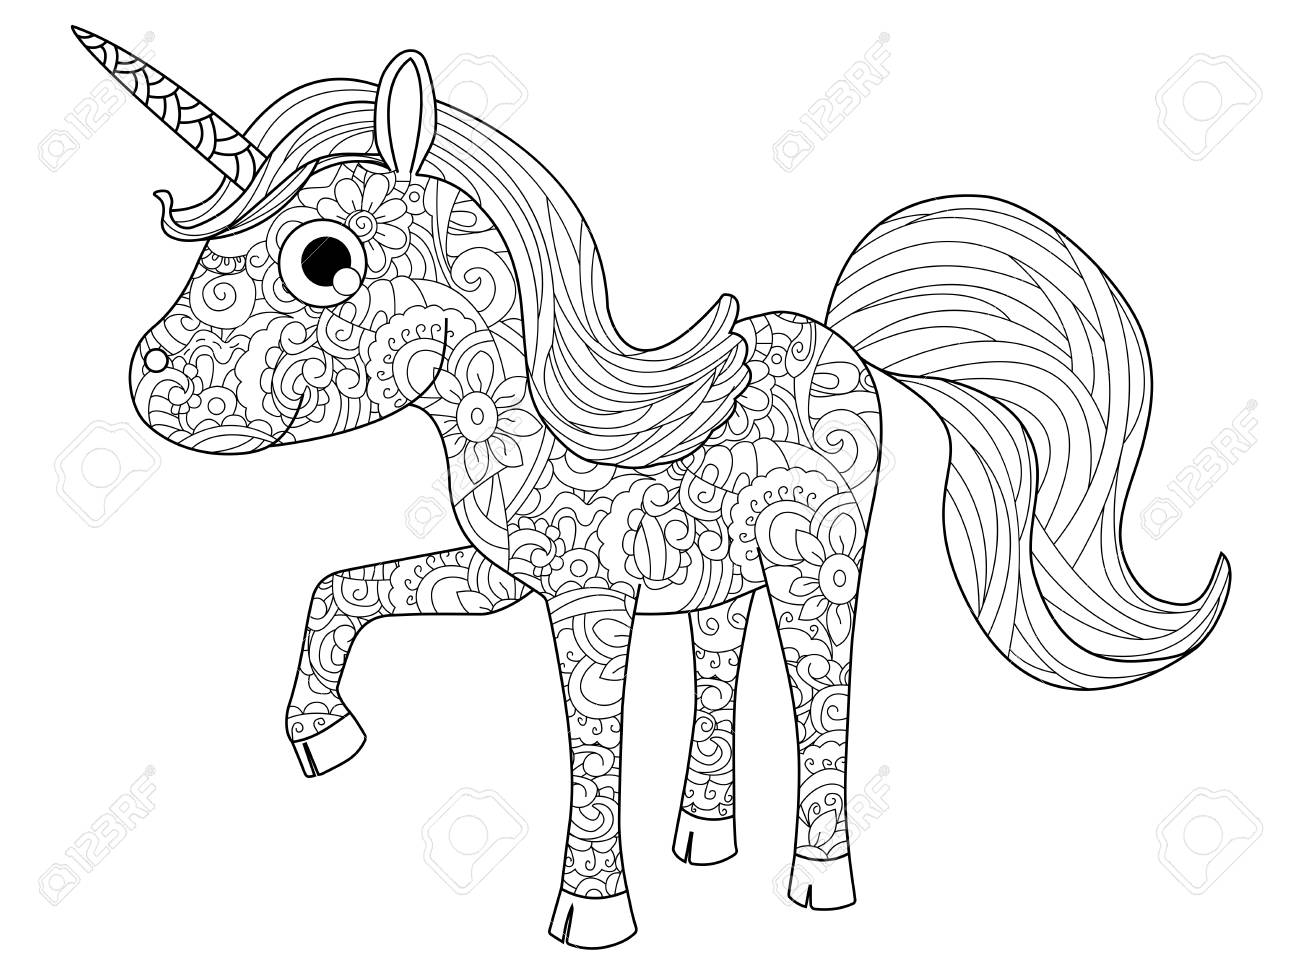 Children Toy Unicorn Coloring Book For Adults Raster Illustration Anti Stress Adult